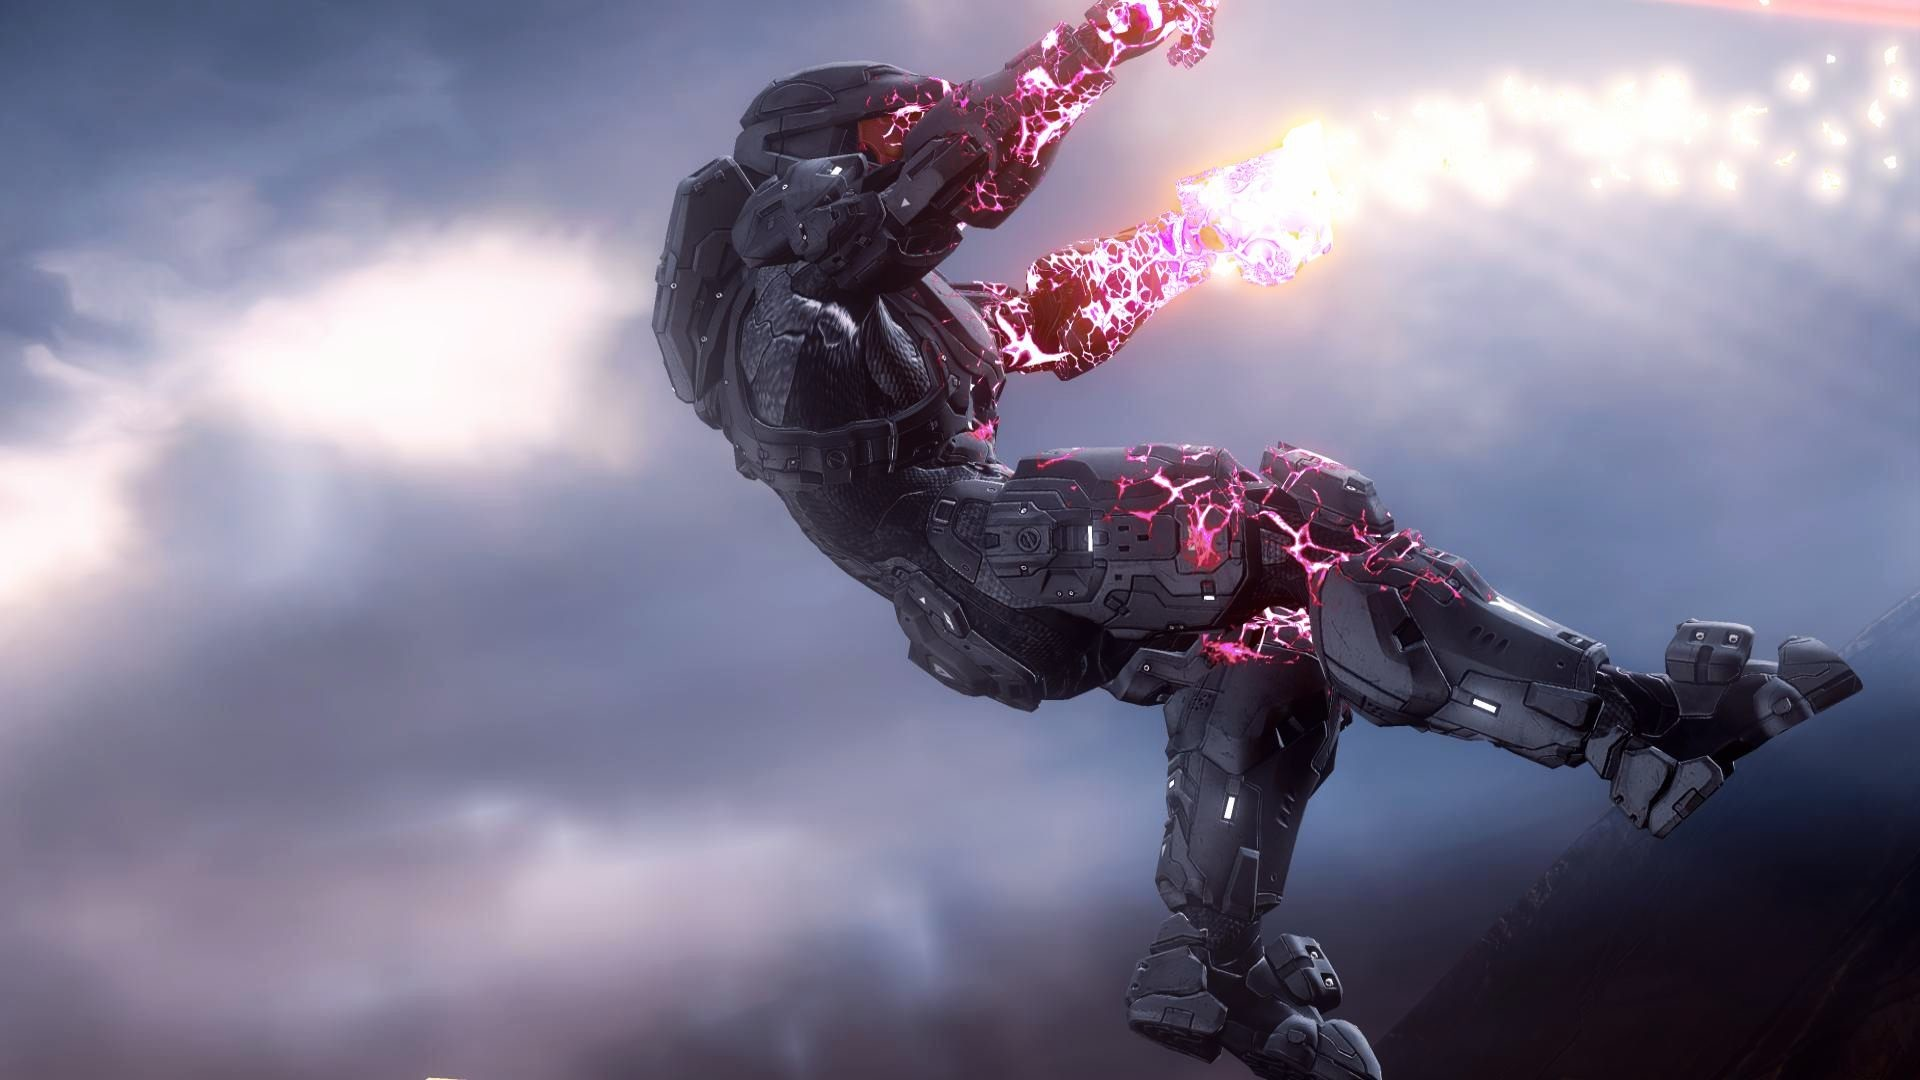 Halo 5 HD Wallpapers